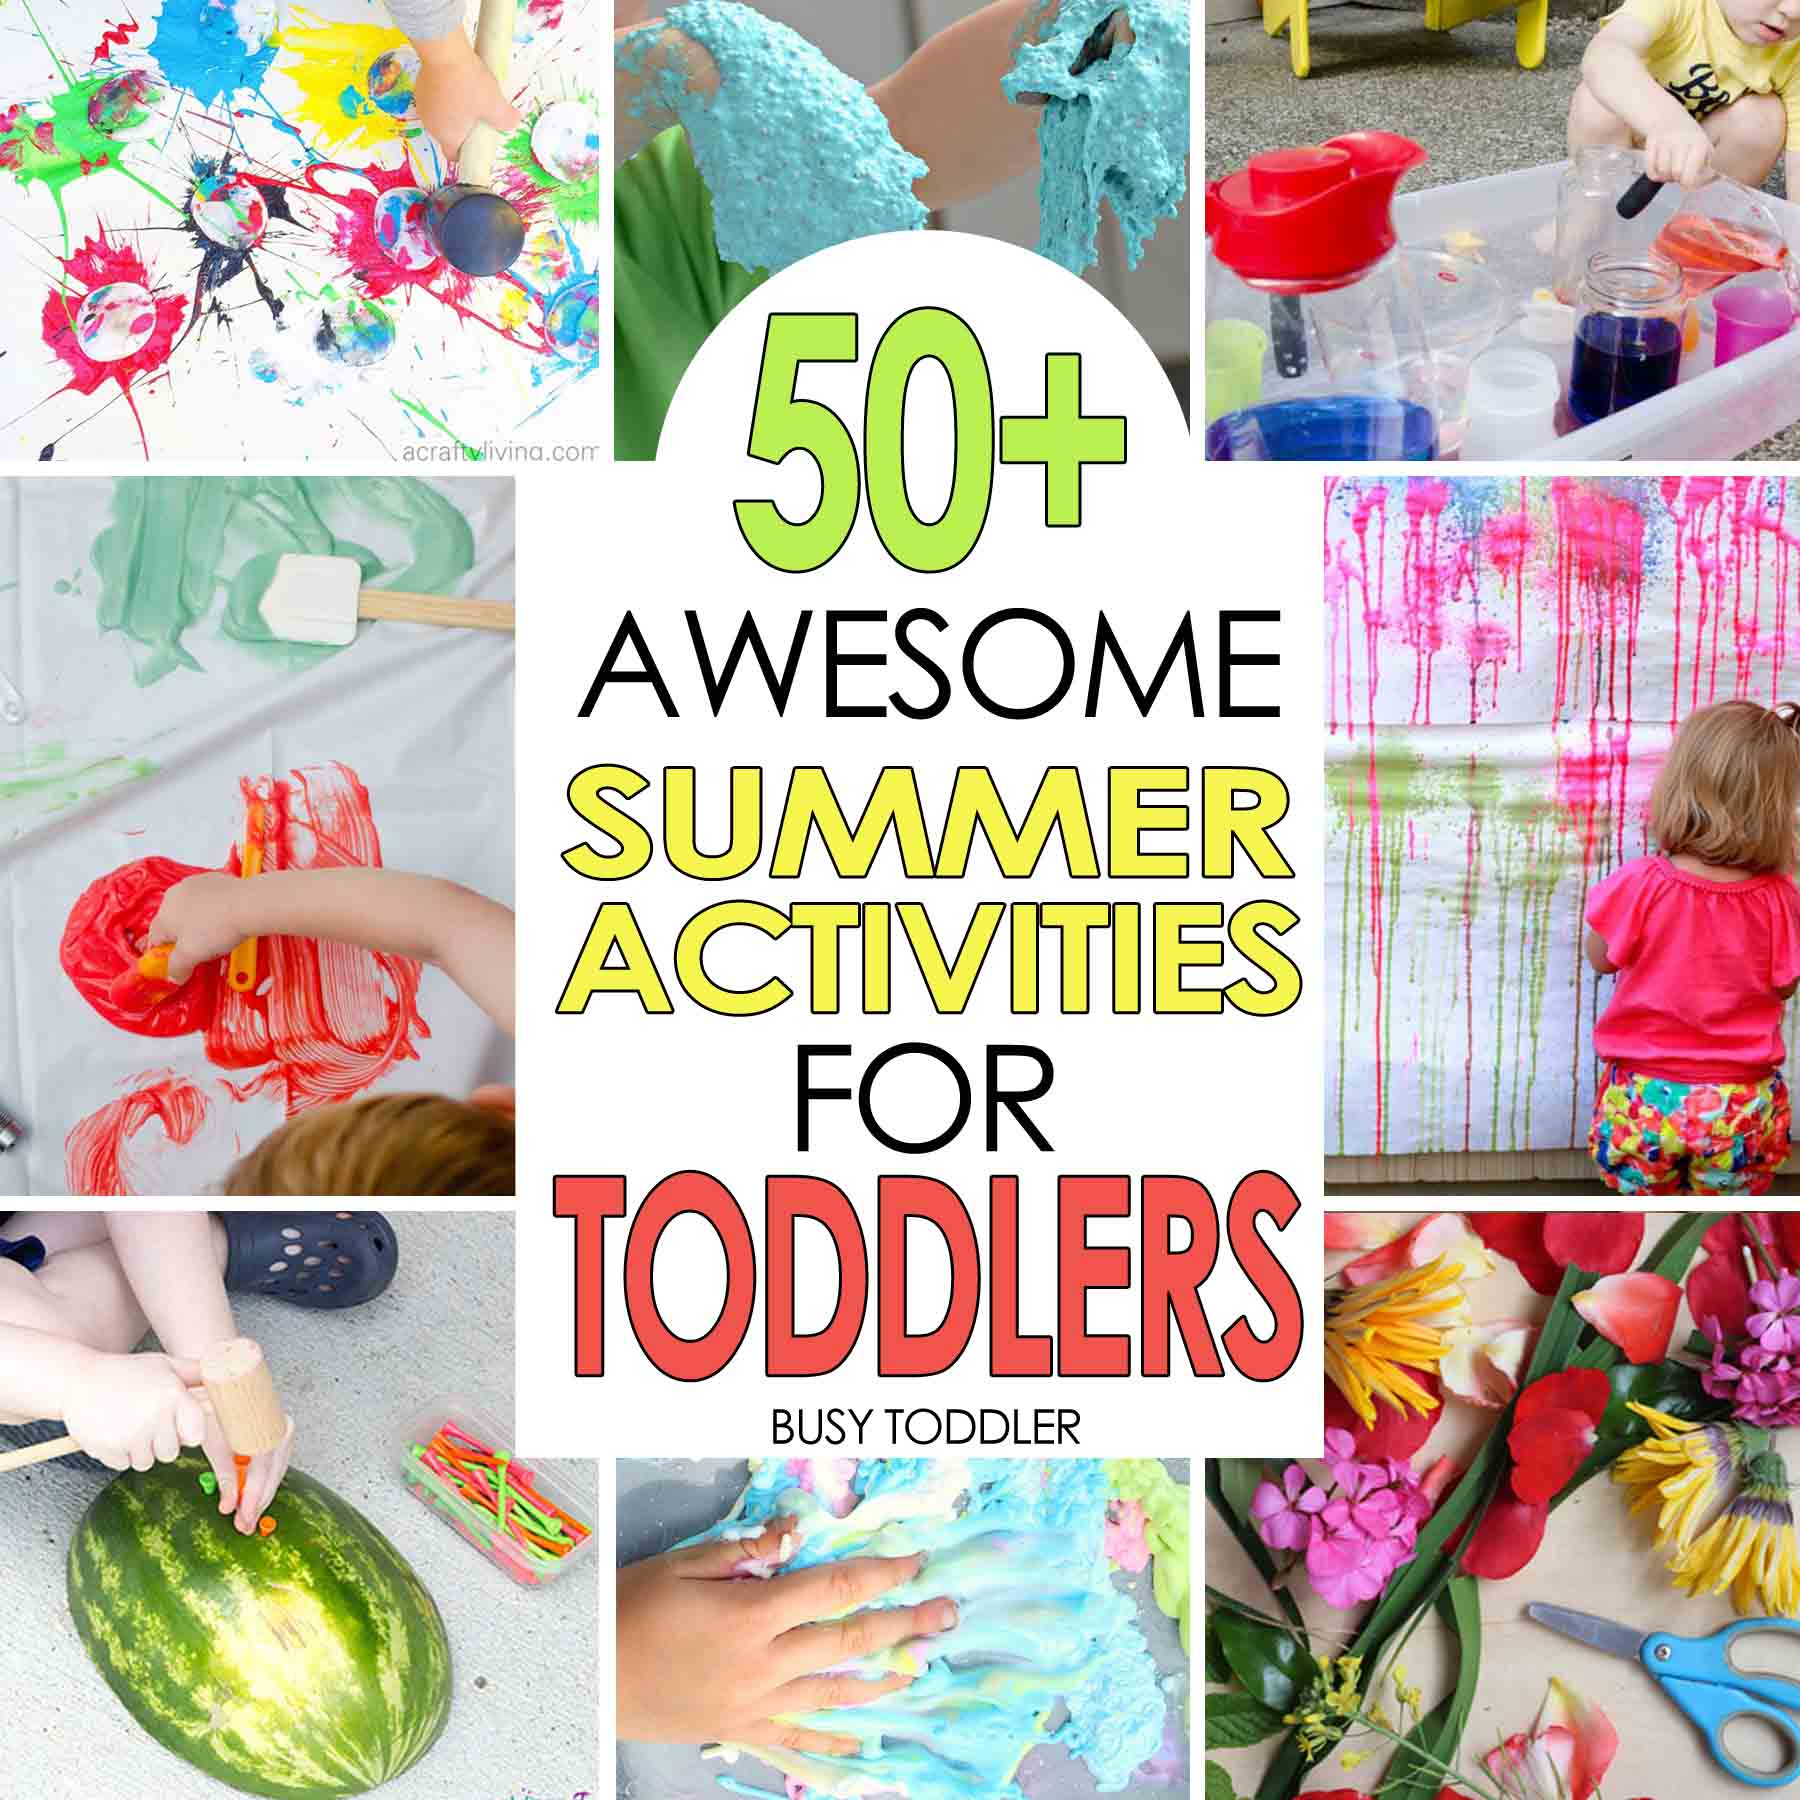 50+ Awesome Summer Activities for Toddlers - Busy Toddler